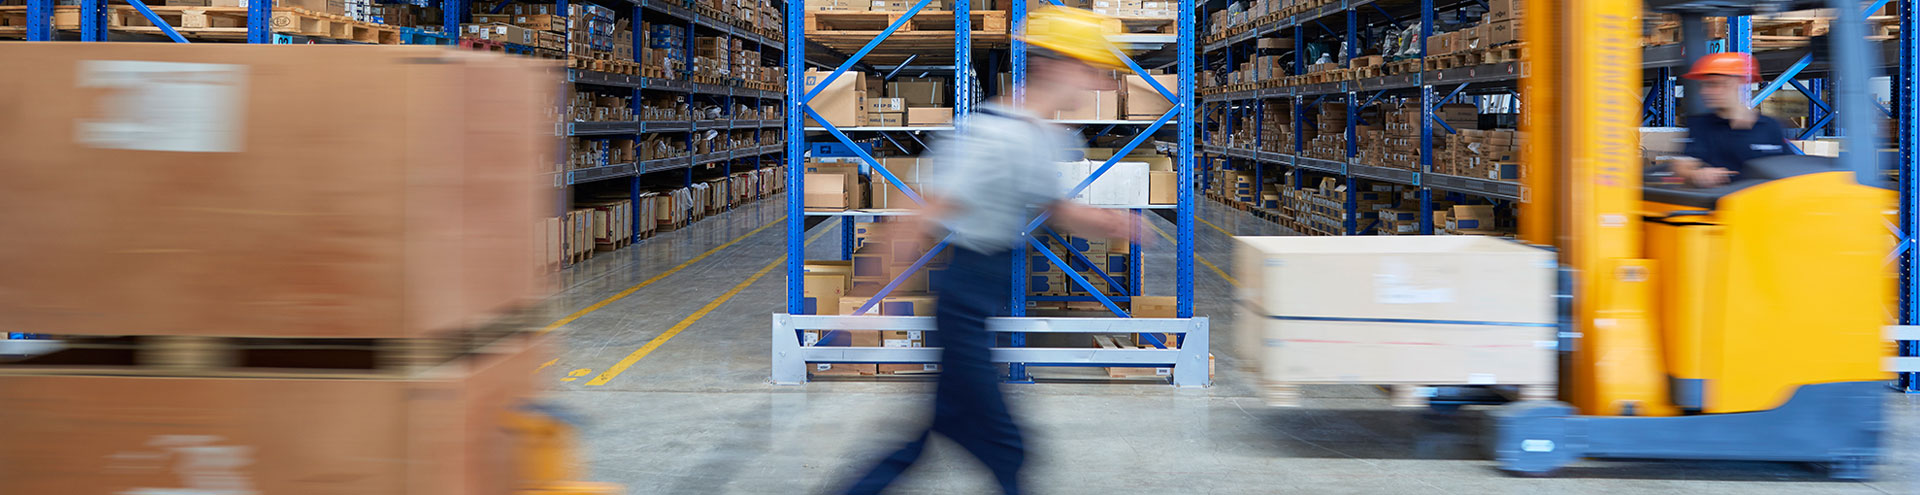 A worker on foot and a worker in a forklift pass each other in a warehouse full of cardboard boxes.